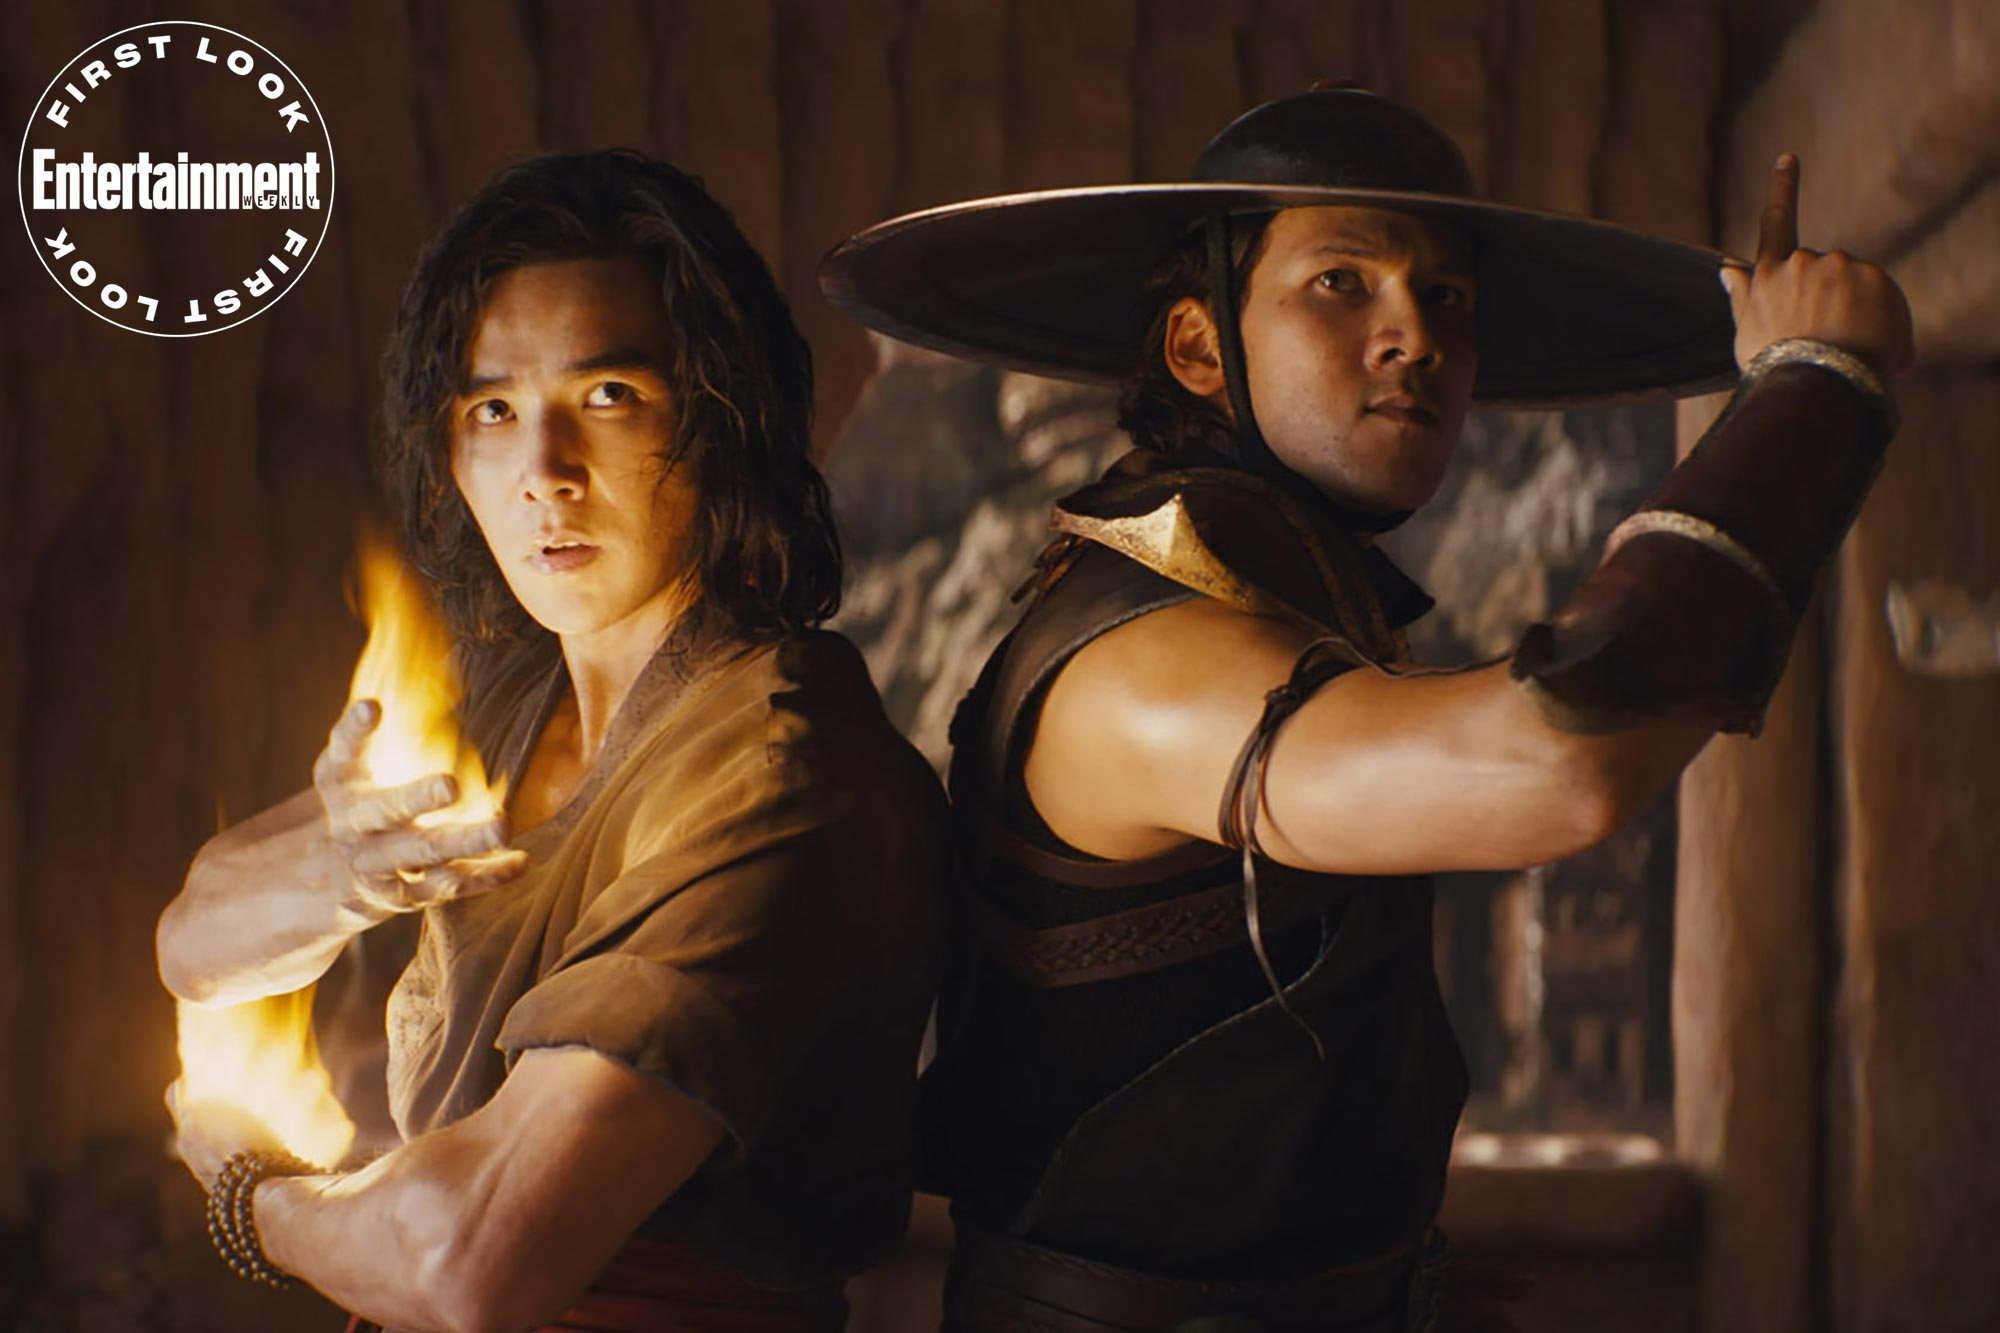 Mortal Kombat- LUDI LIN as Liu Kang and MAX HUANG as Kung Lao